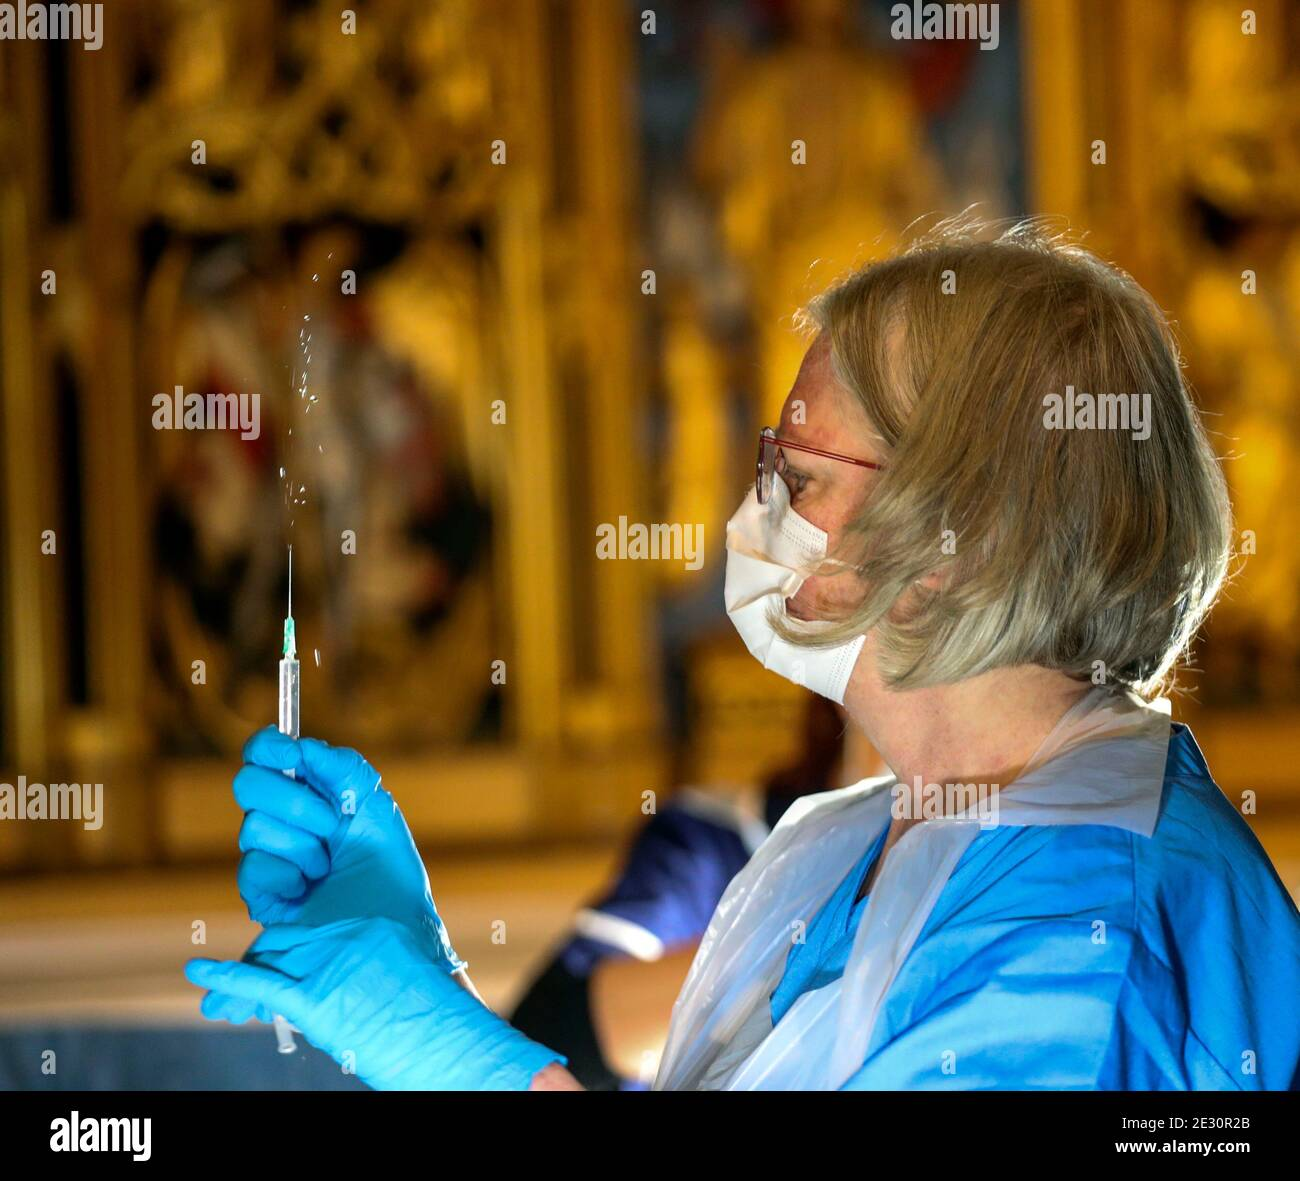 The Pfizer coronavirus vaccine is prepared by a health worker at Salisbury Cathedral, Wiltshire, before being administered to members of the public. Stock Photo